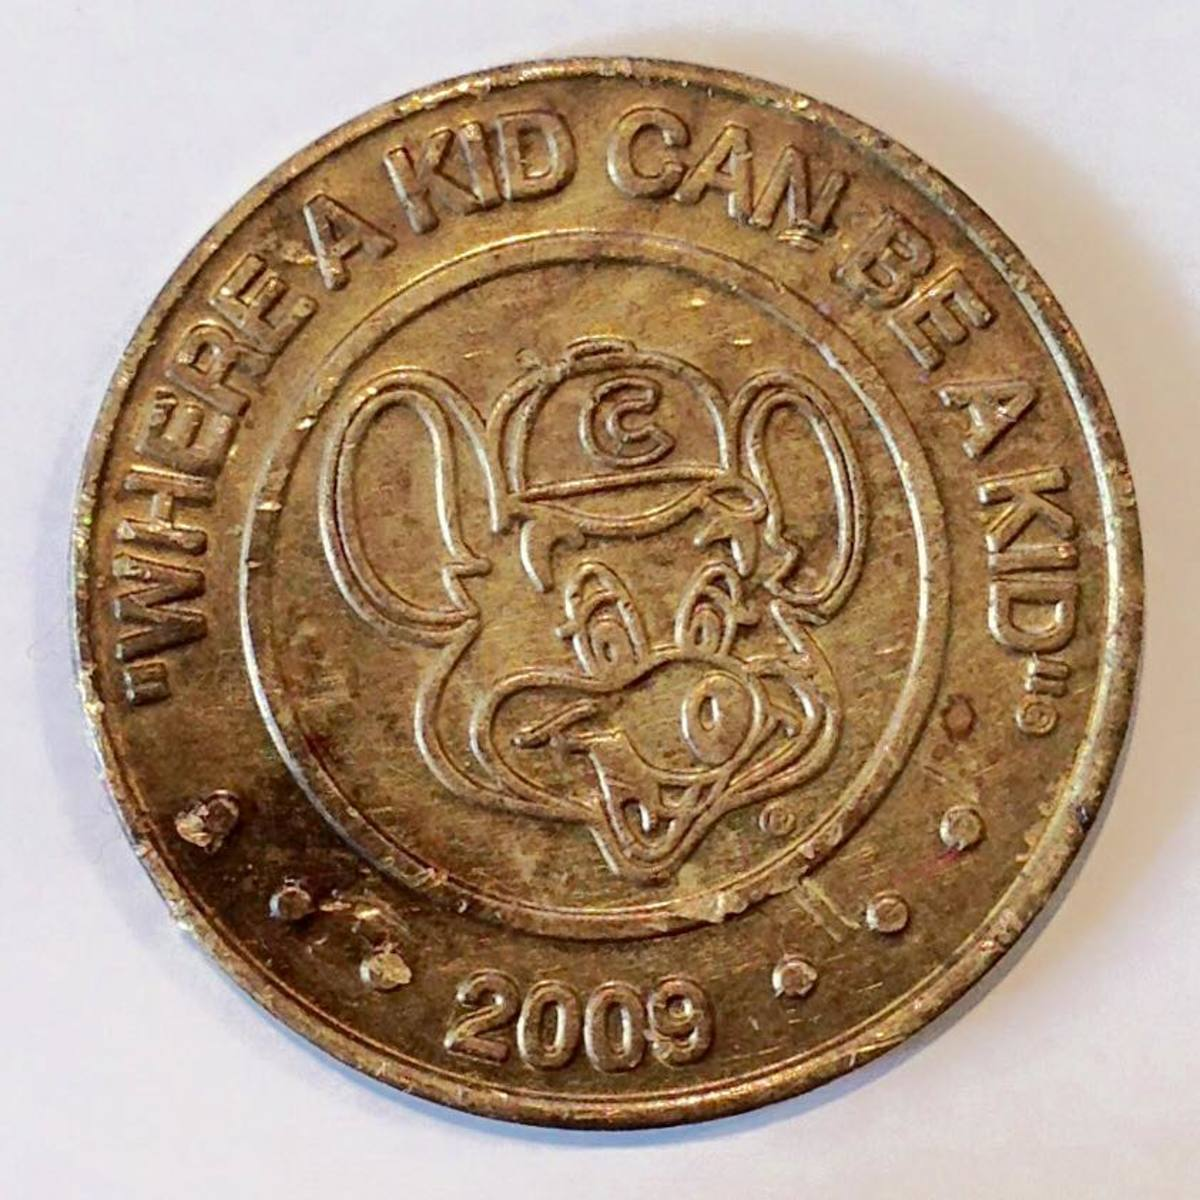 Finding monetary coins is easy. Finding a token like this is rare!